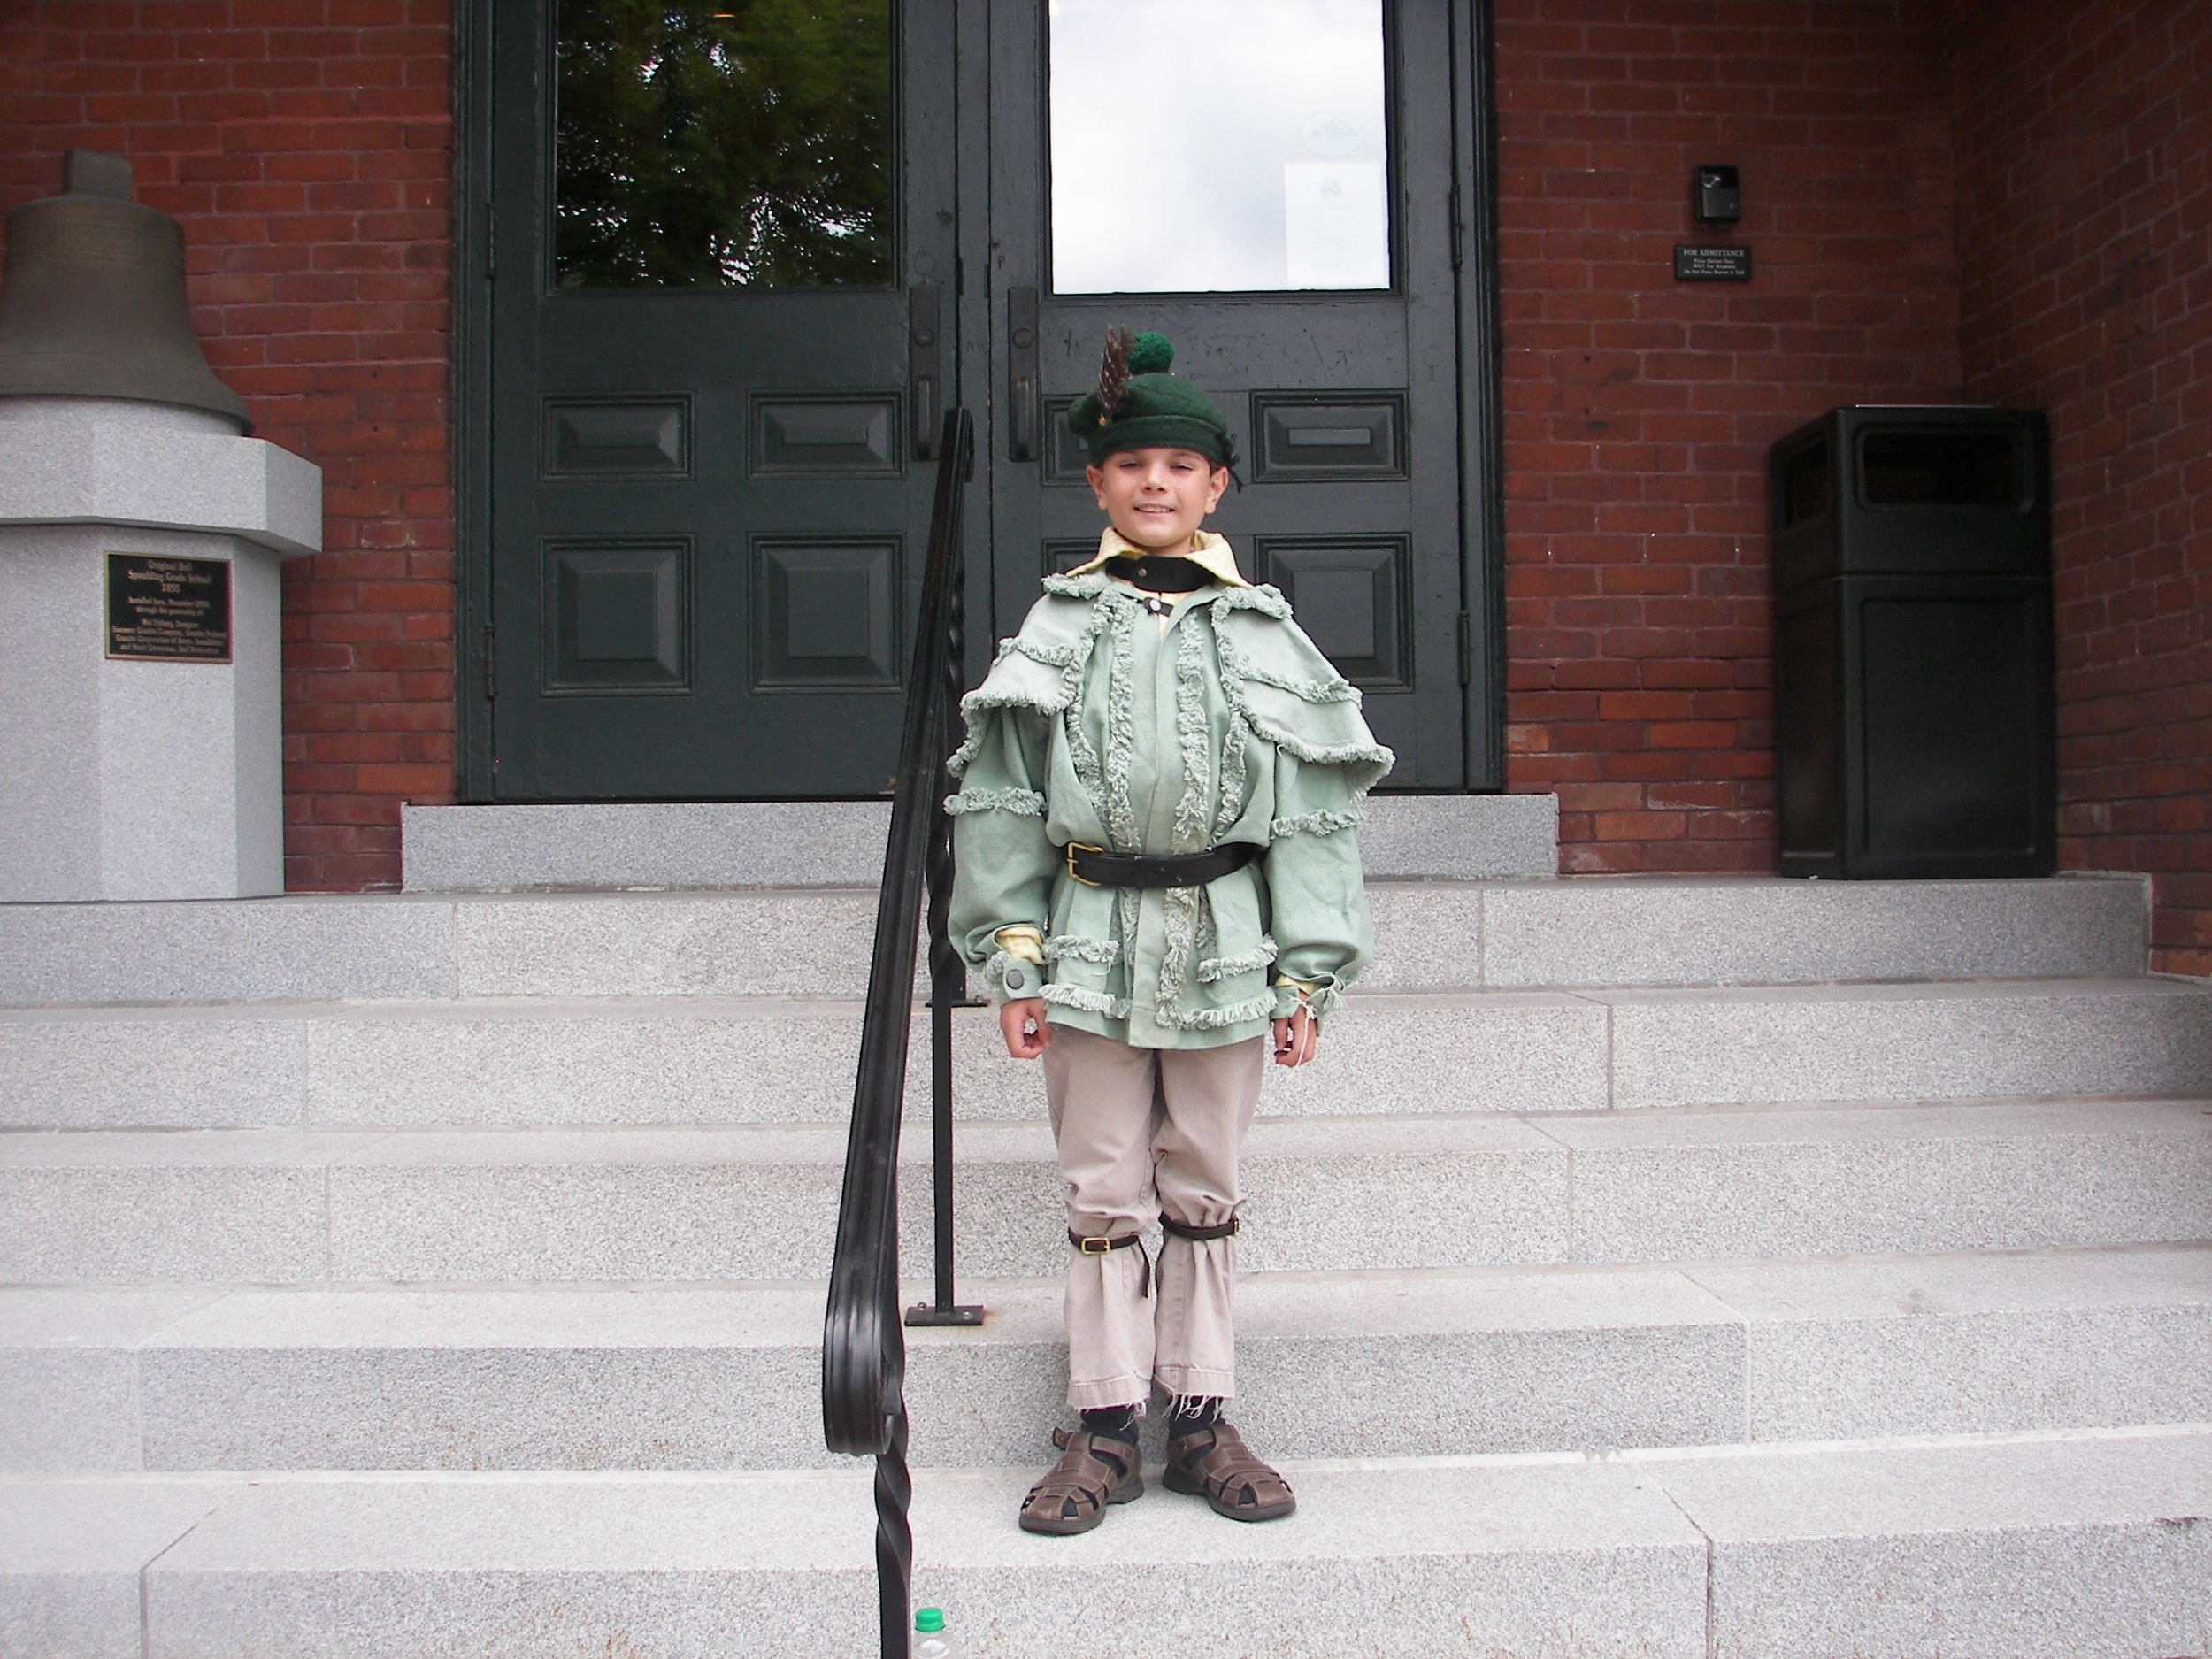 Michael White, ready for his first parade - July 2007